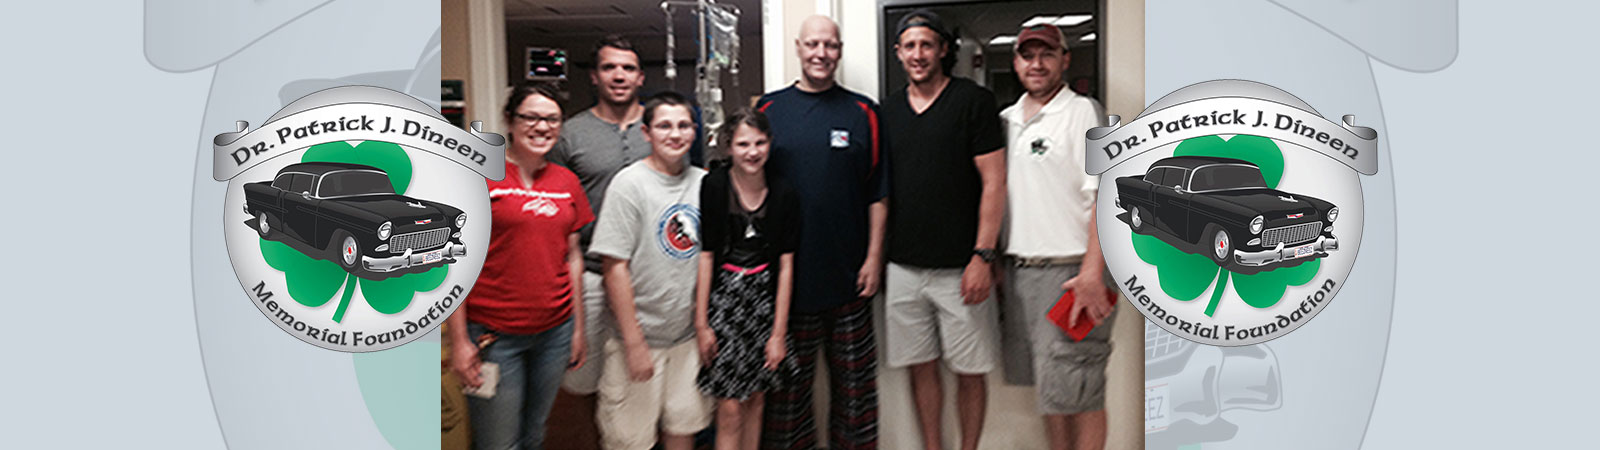 Surprise Visit by NHL Players Lifts Patients Spirits